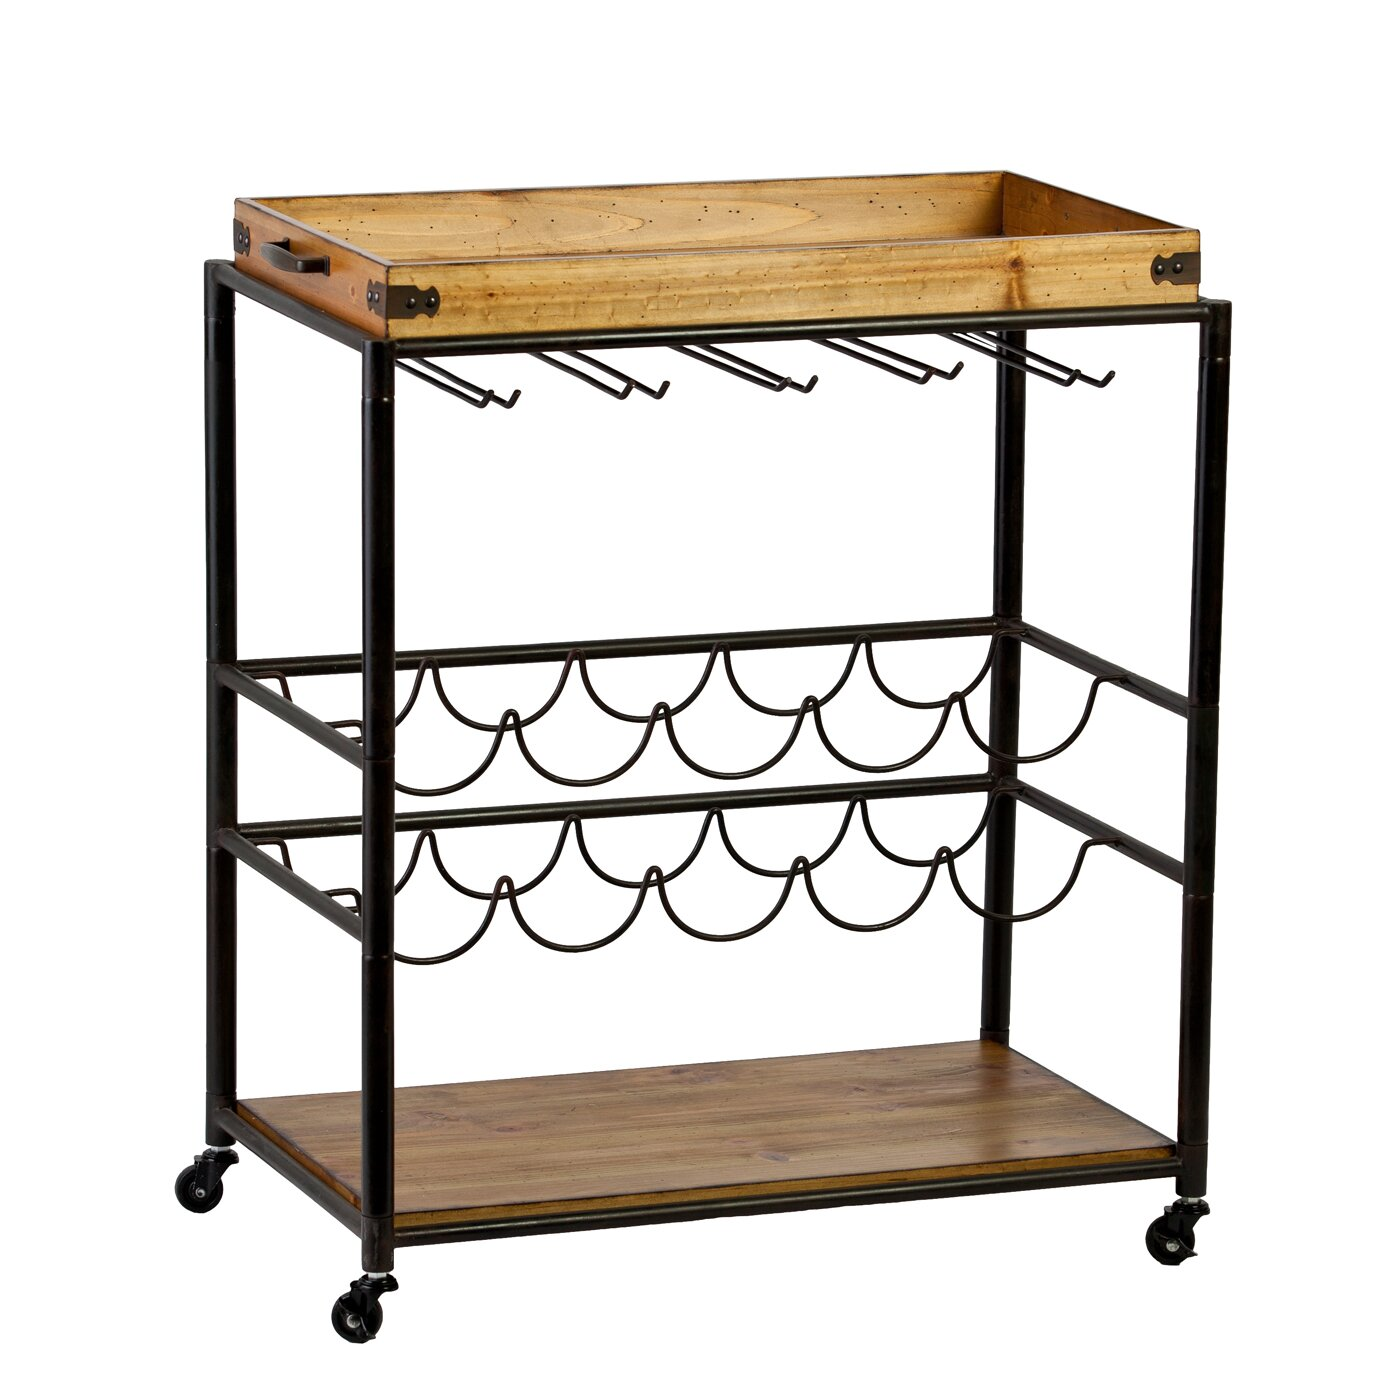 August Grove Victoria Serving Cart & Reviews  Wayfair. Kitchen Blue Island. Kitchen Lighting Traditional. Kitchen Tools Baster. Kitchen Cupboards Wall Mounted. Redo Kitchen Table And Chairs. Vivid Kitchen Colors. Kitchen Ikea Australia. Kitchen Layout Examples